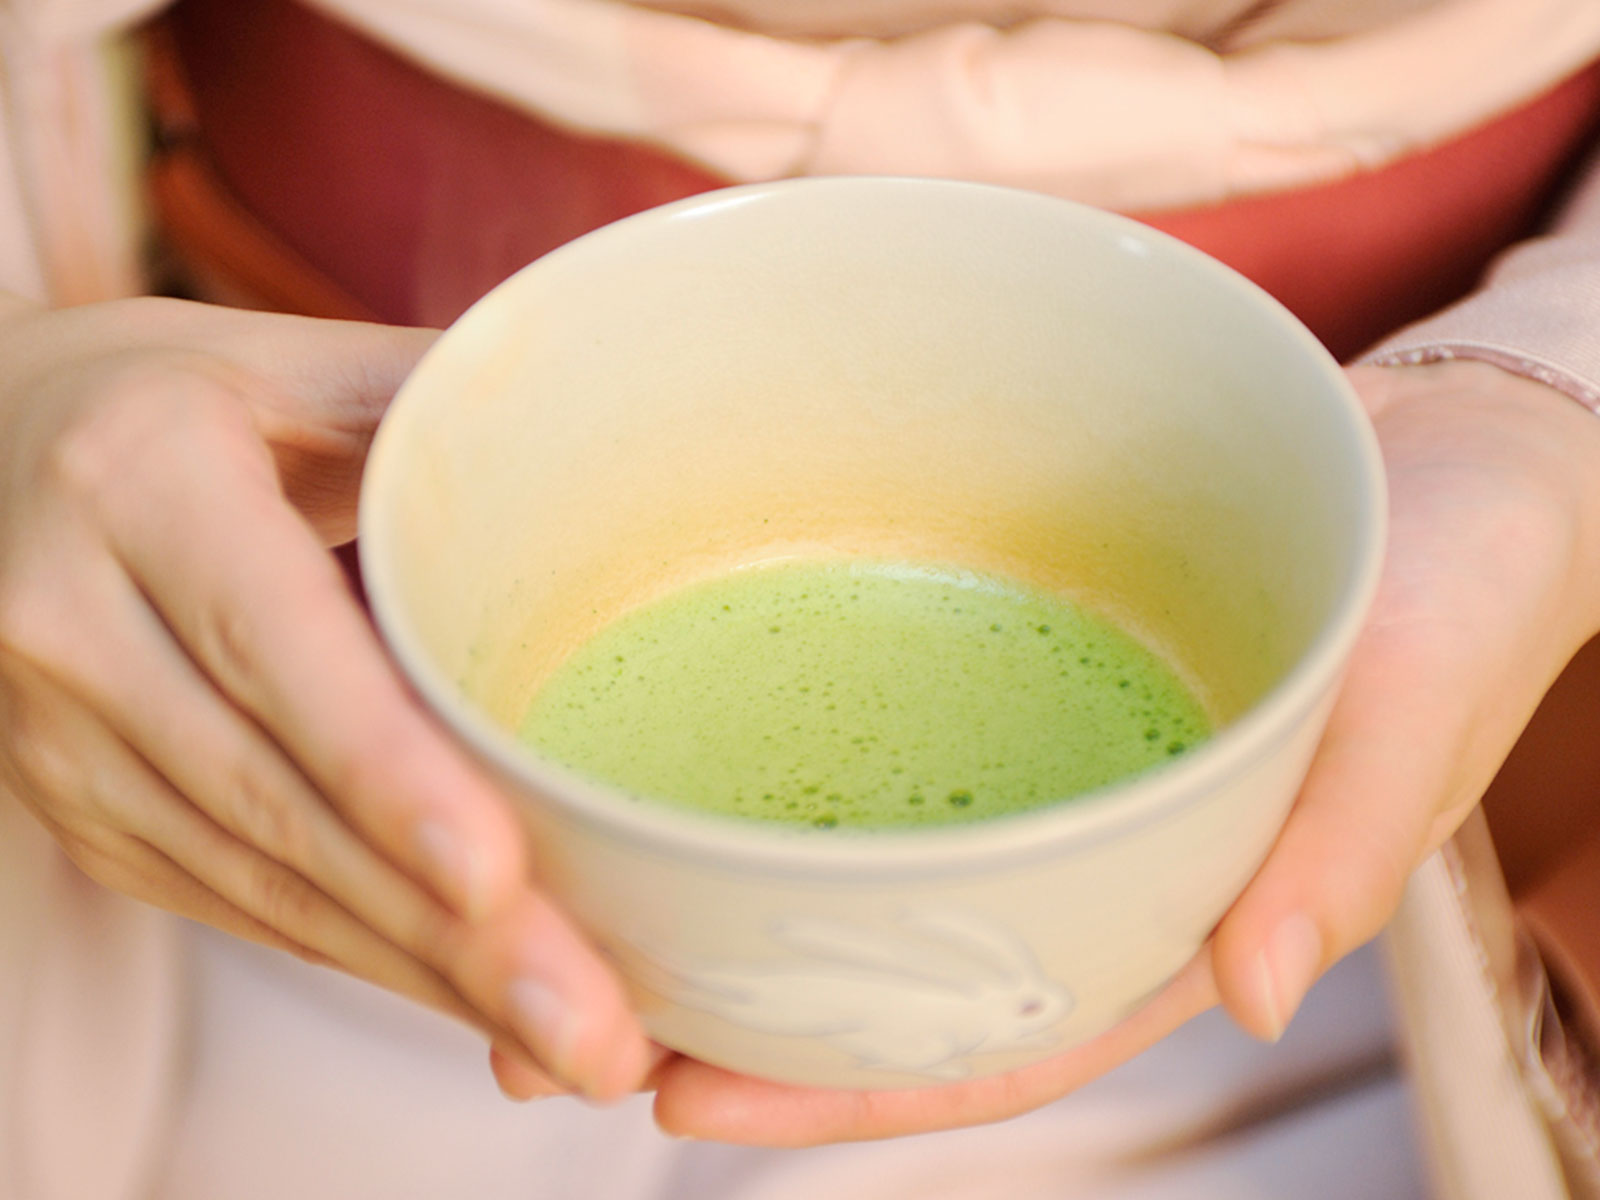 Tea is one of the most typical beverages in Japan